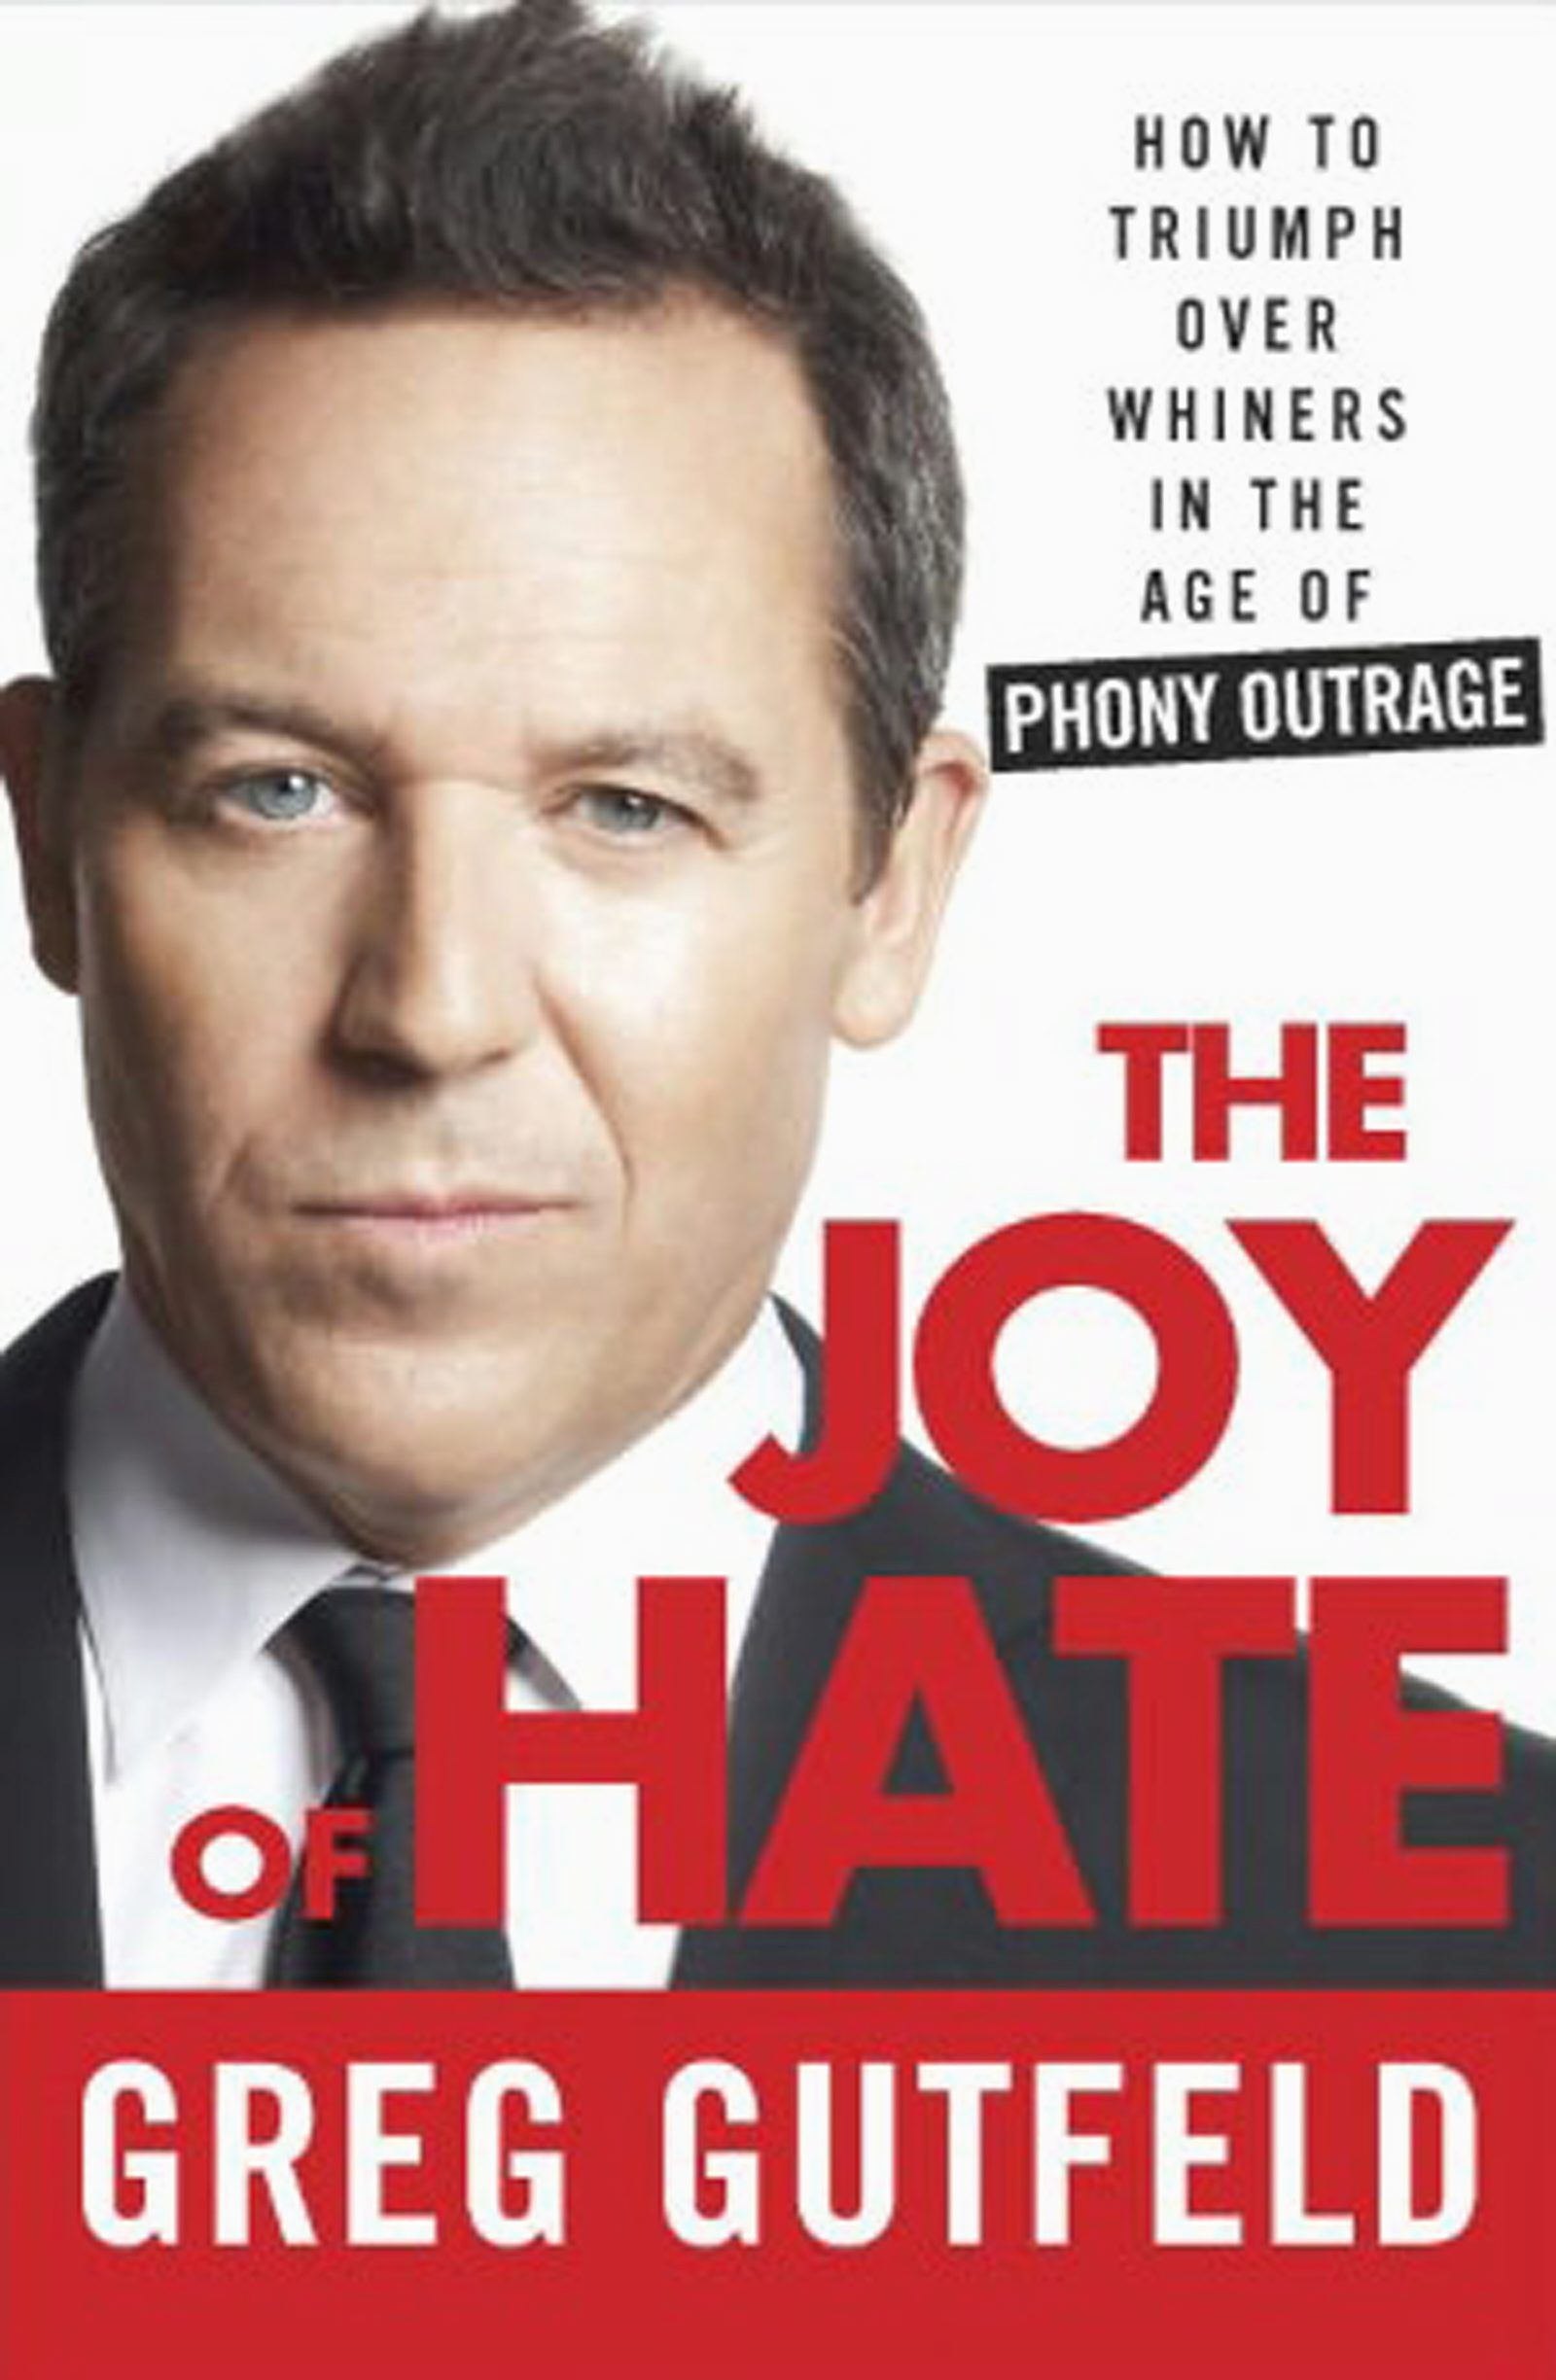 The Joy of Hate- How to Triumph Over Whiners in the Age of Phony Outrage, by Greg Gutfeld